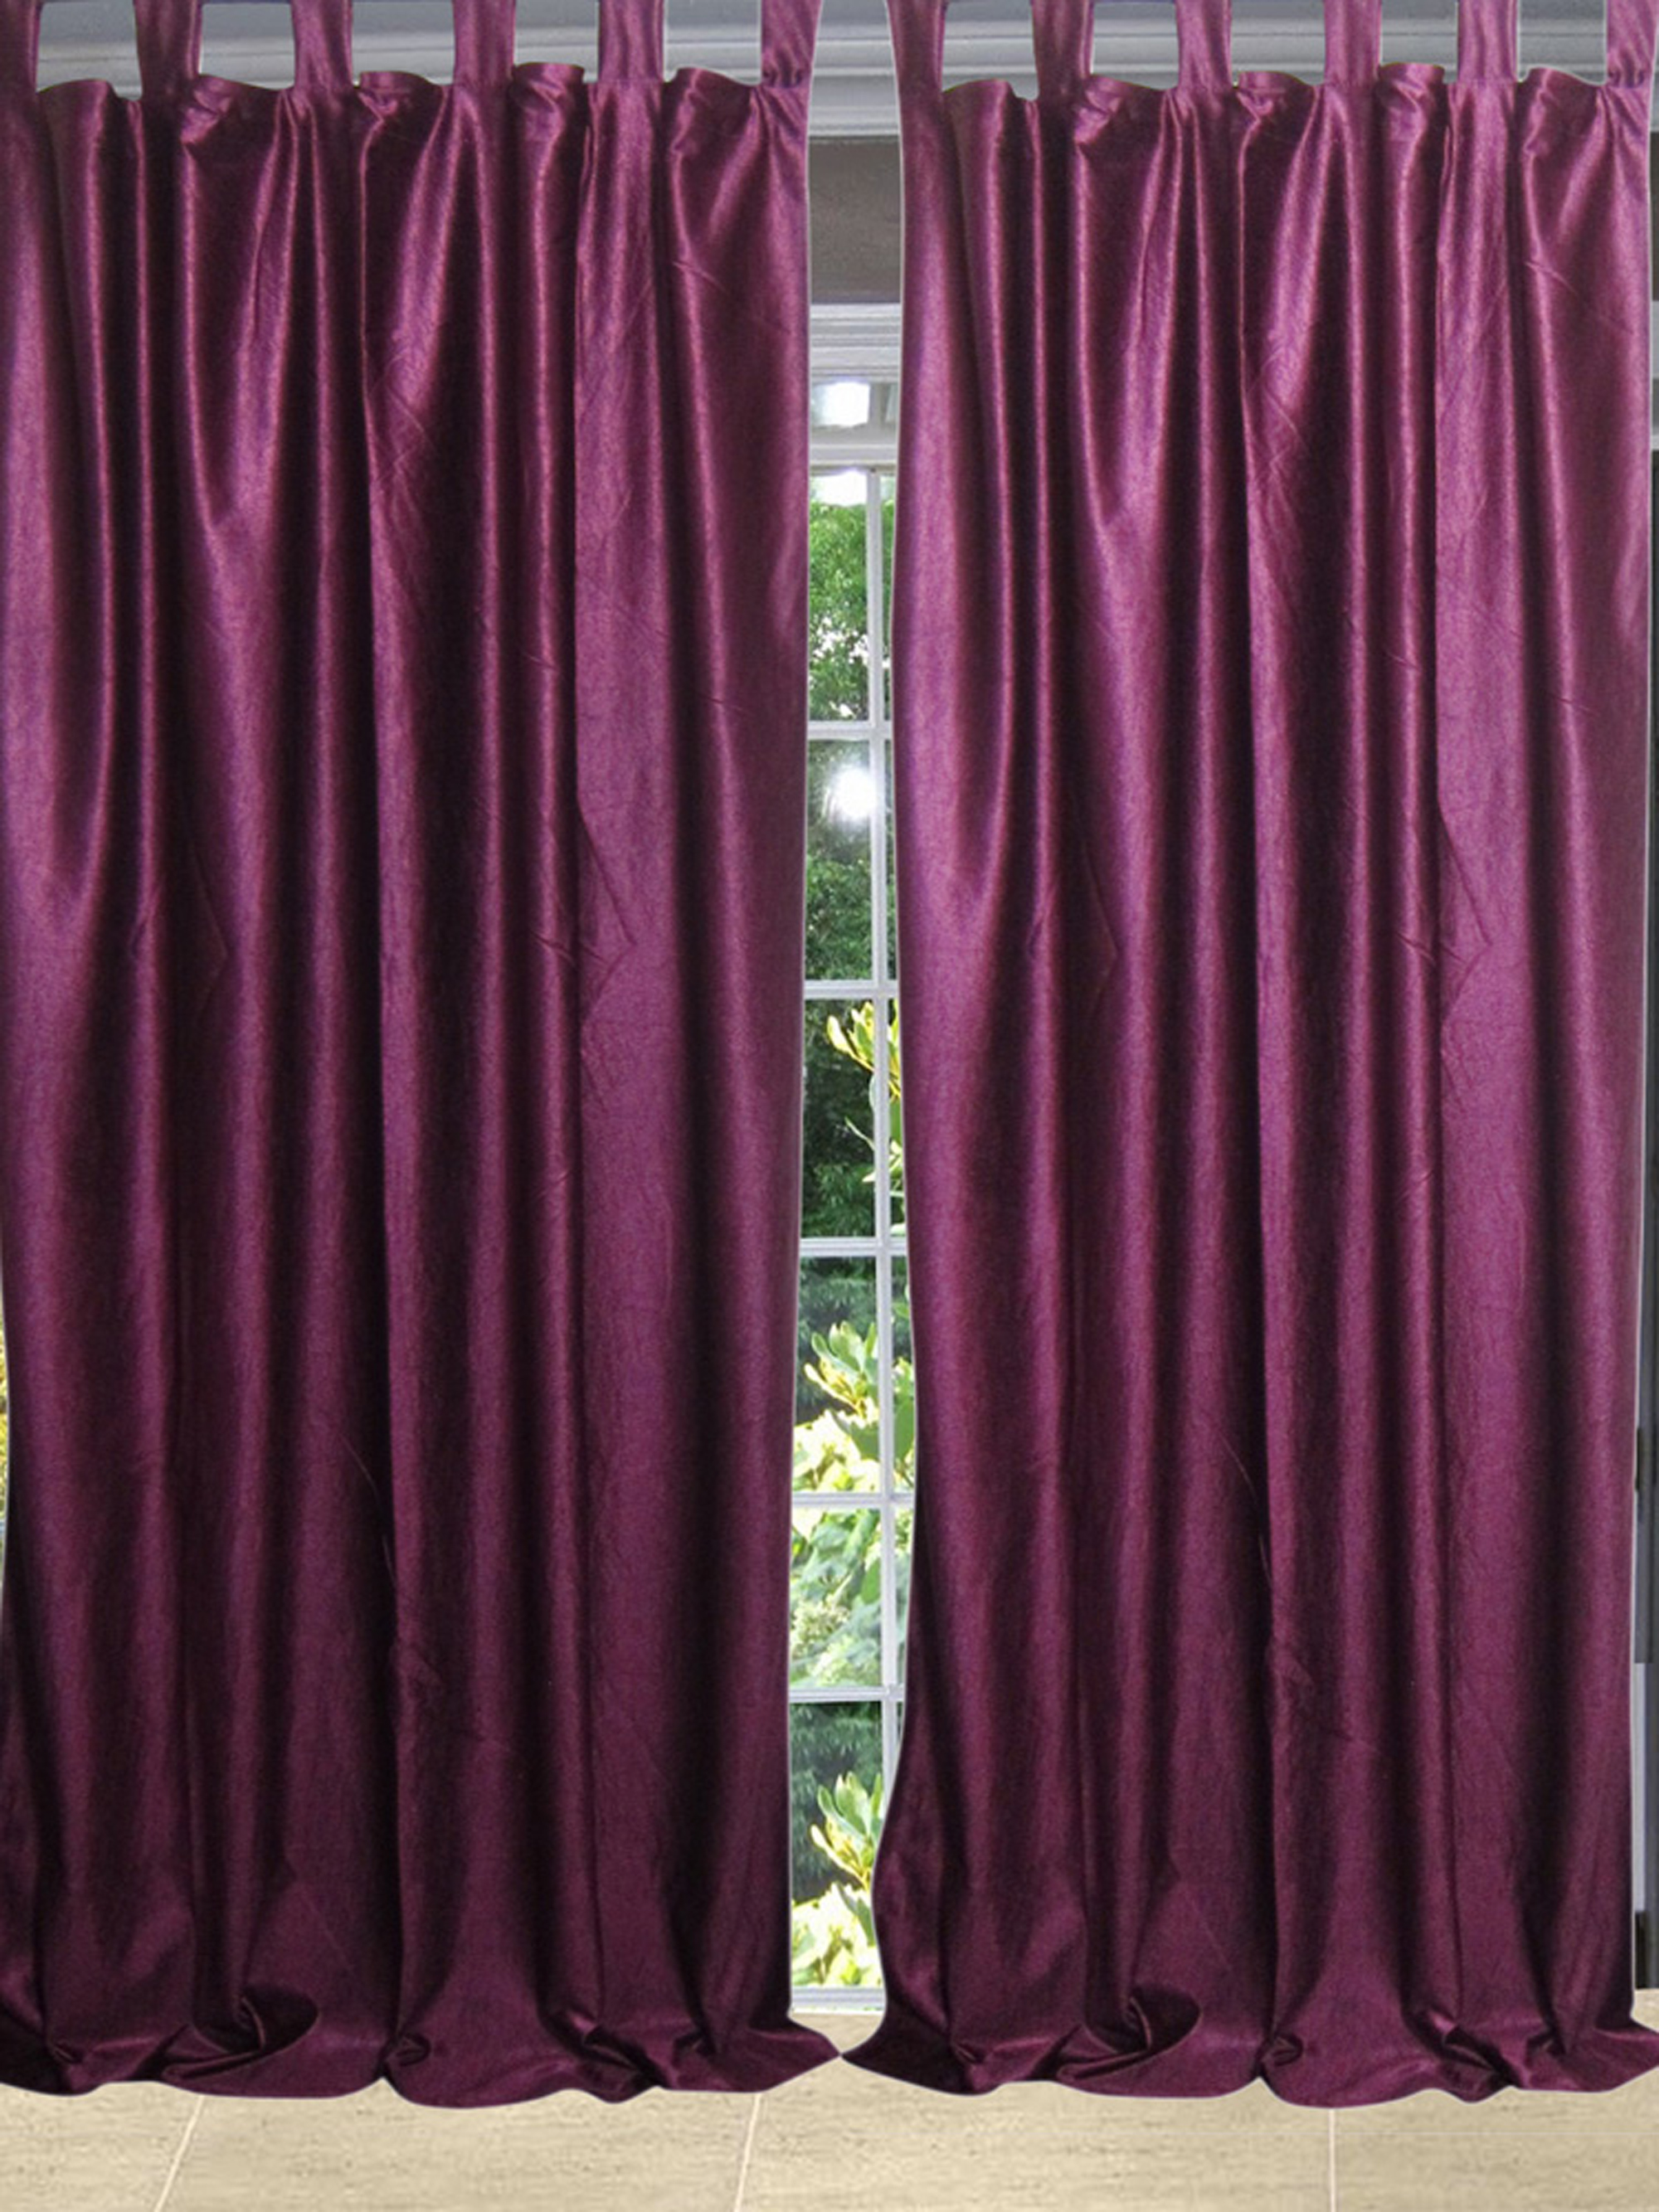 Mogul Bohemian Décor Purple Curtains Drape 2 Panels Window Treatment (96x48)